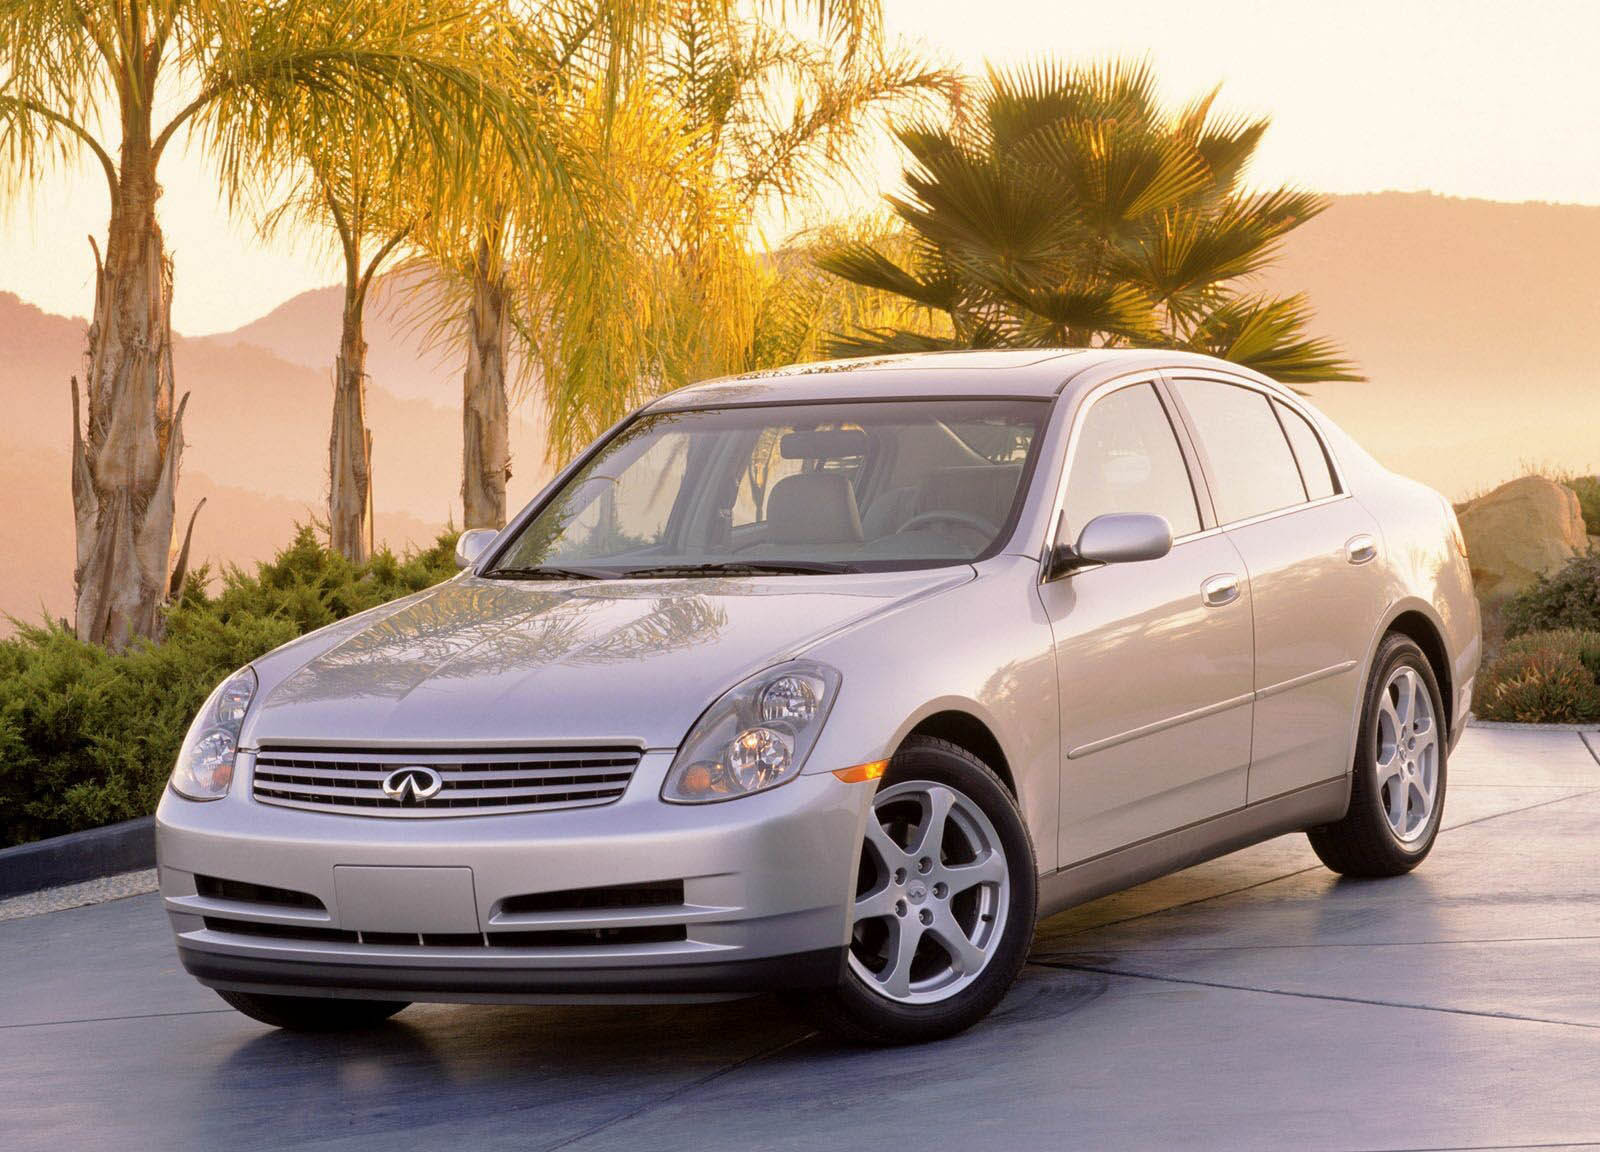 2003 Infiniti G35 | Top Speed